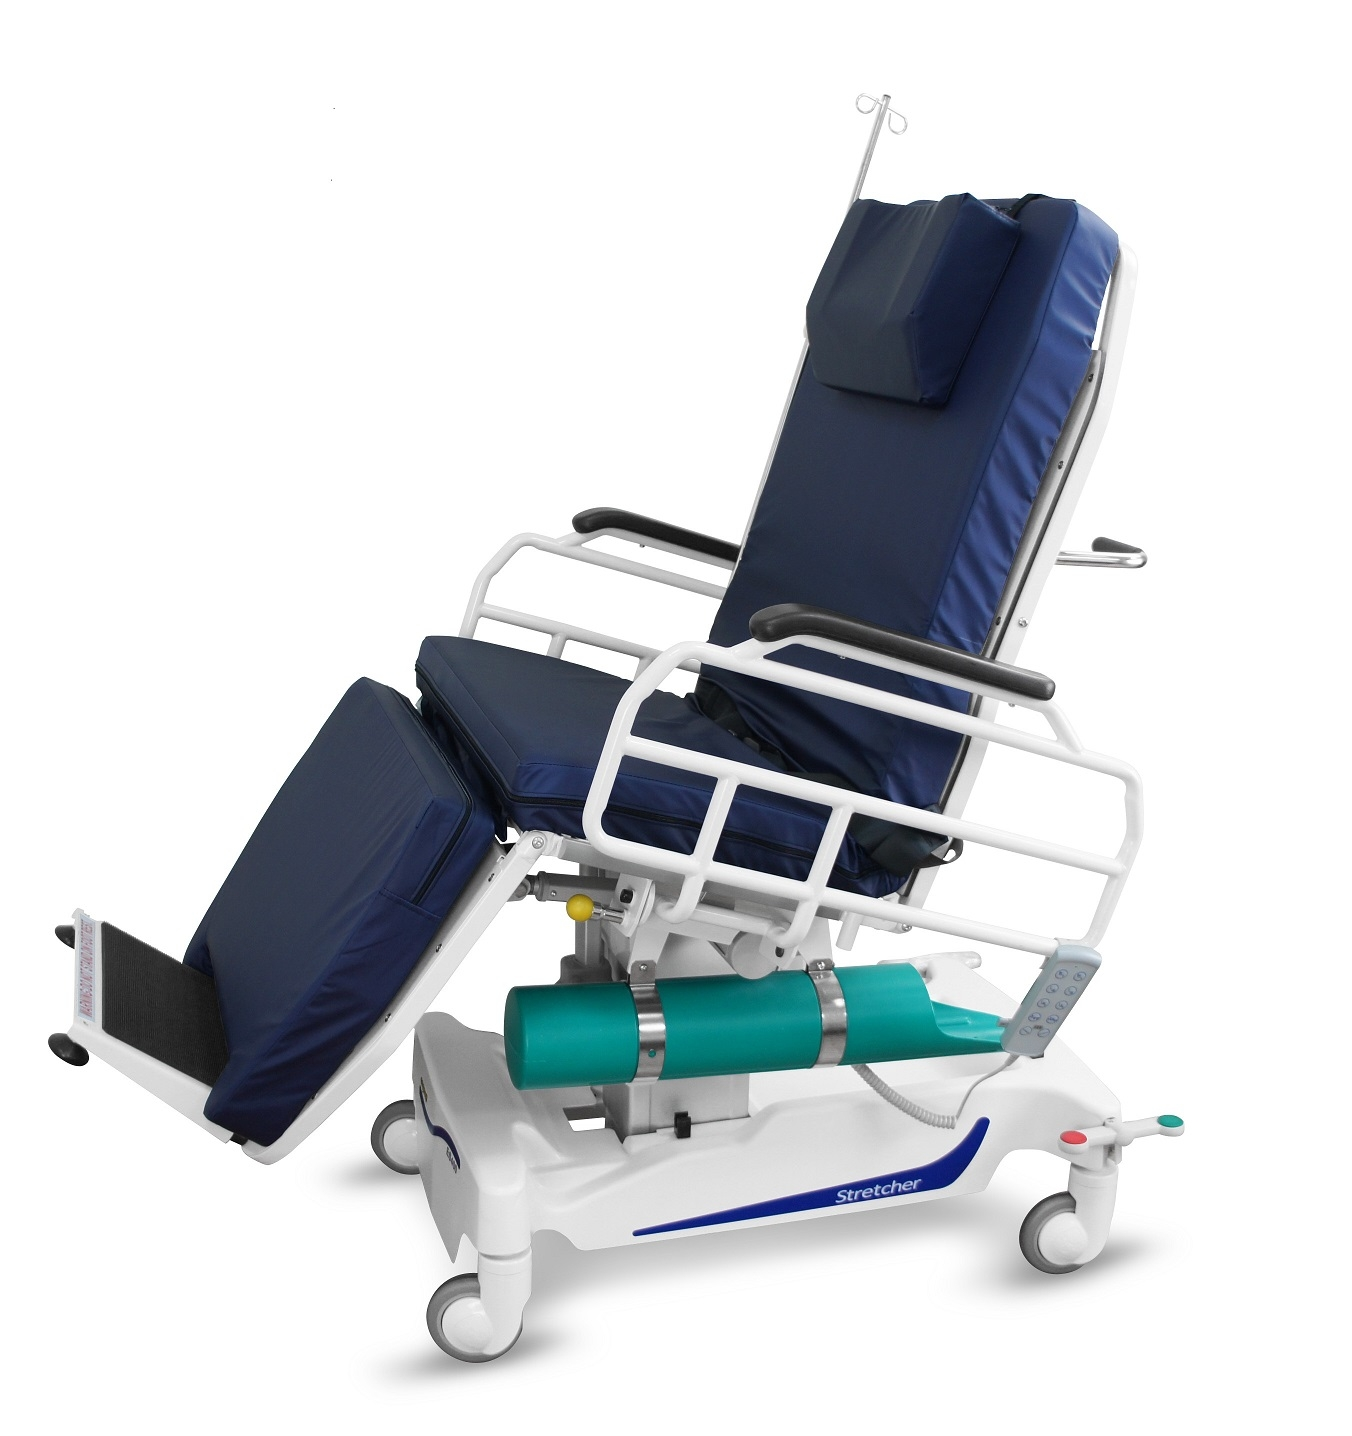 ES400 Multi functional Stretcher –Chair